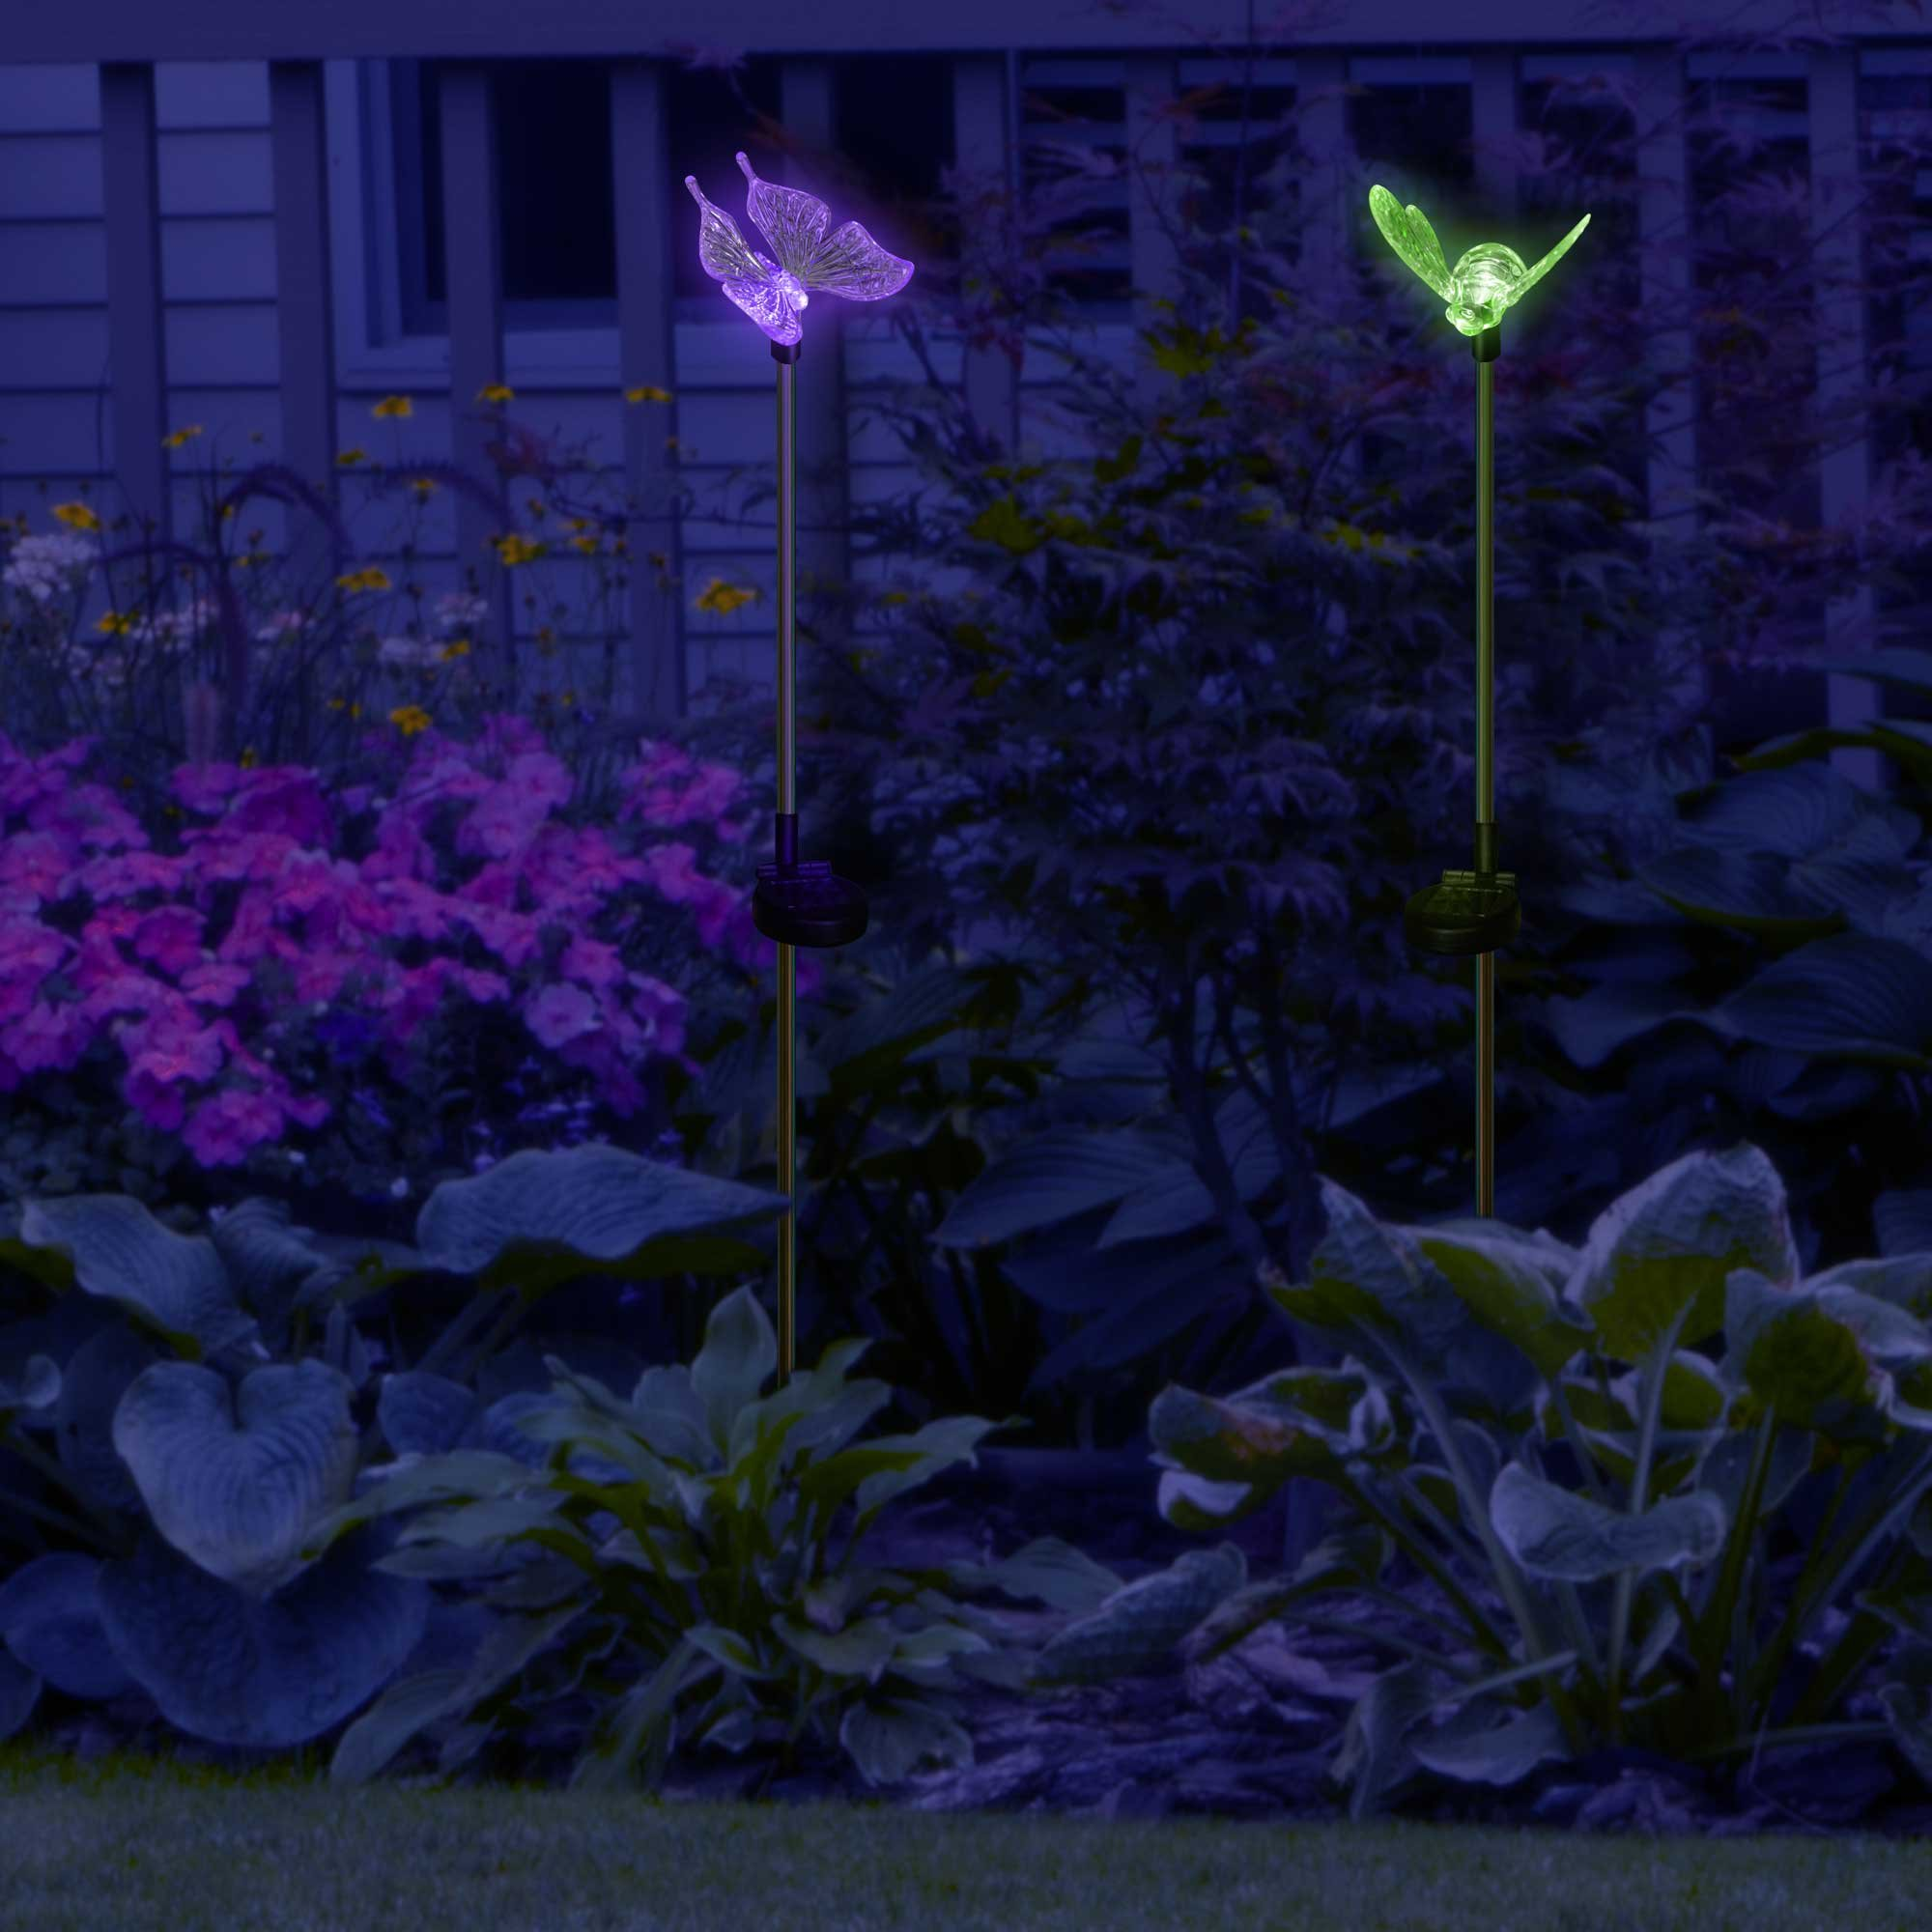 SolarDuke Solar Garden Outdoor Stake Lights Butterfly and Bumble Bee Garden Lighting Path Decoration Color Changing Patio Lawn Backyard Decor by SolarDuke (Image #8)